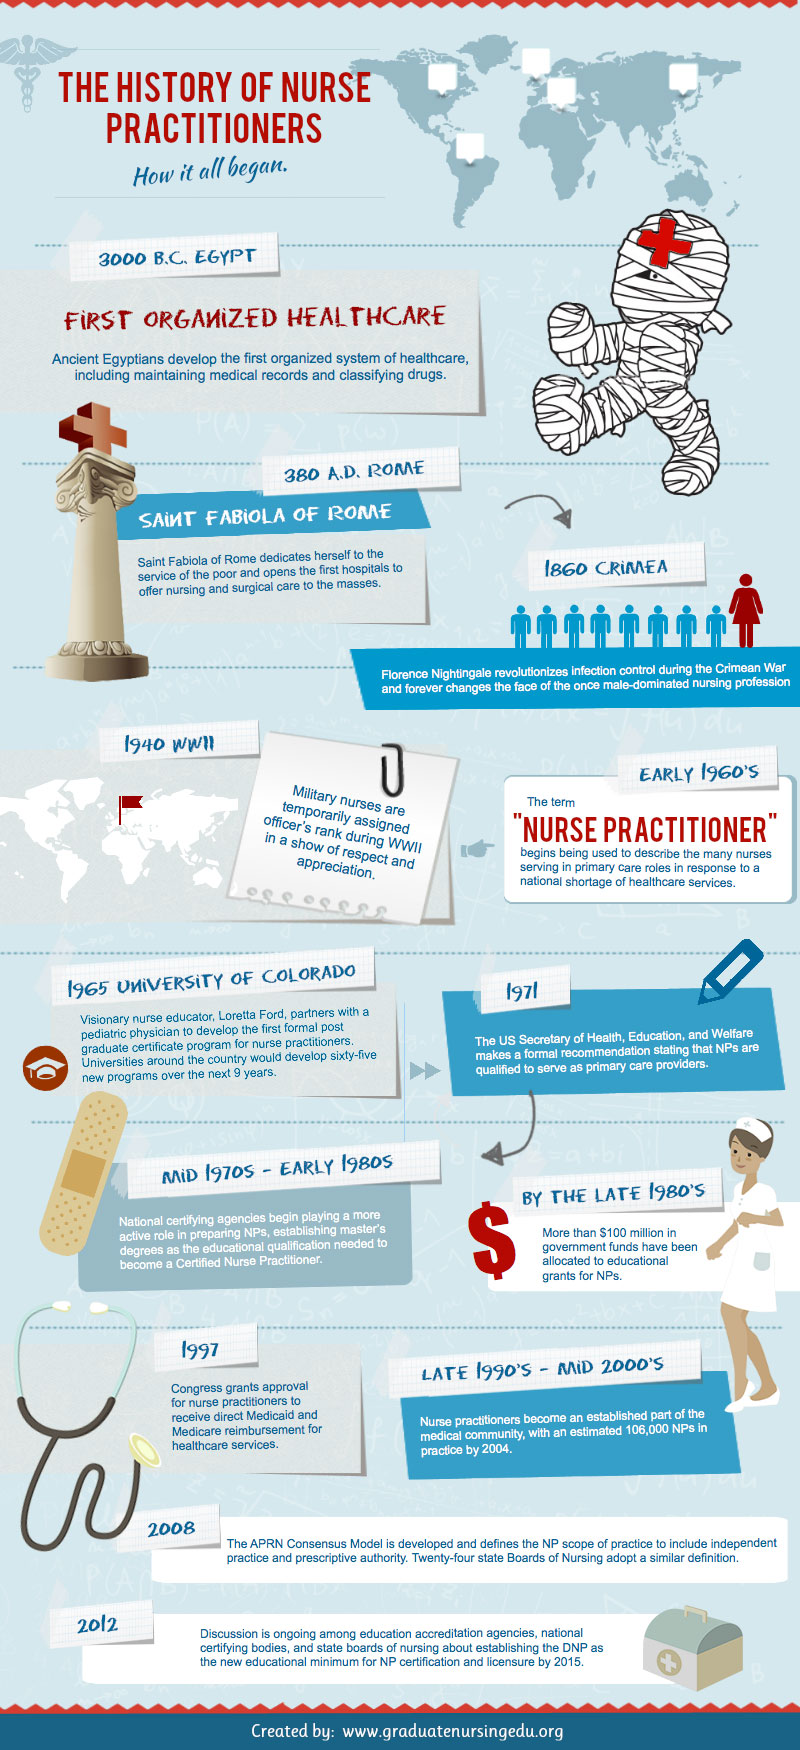 The History of Nurse Practitioners